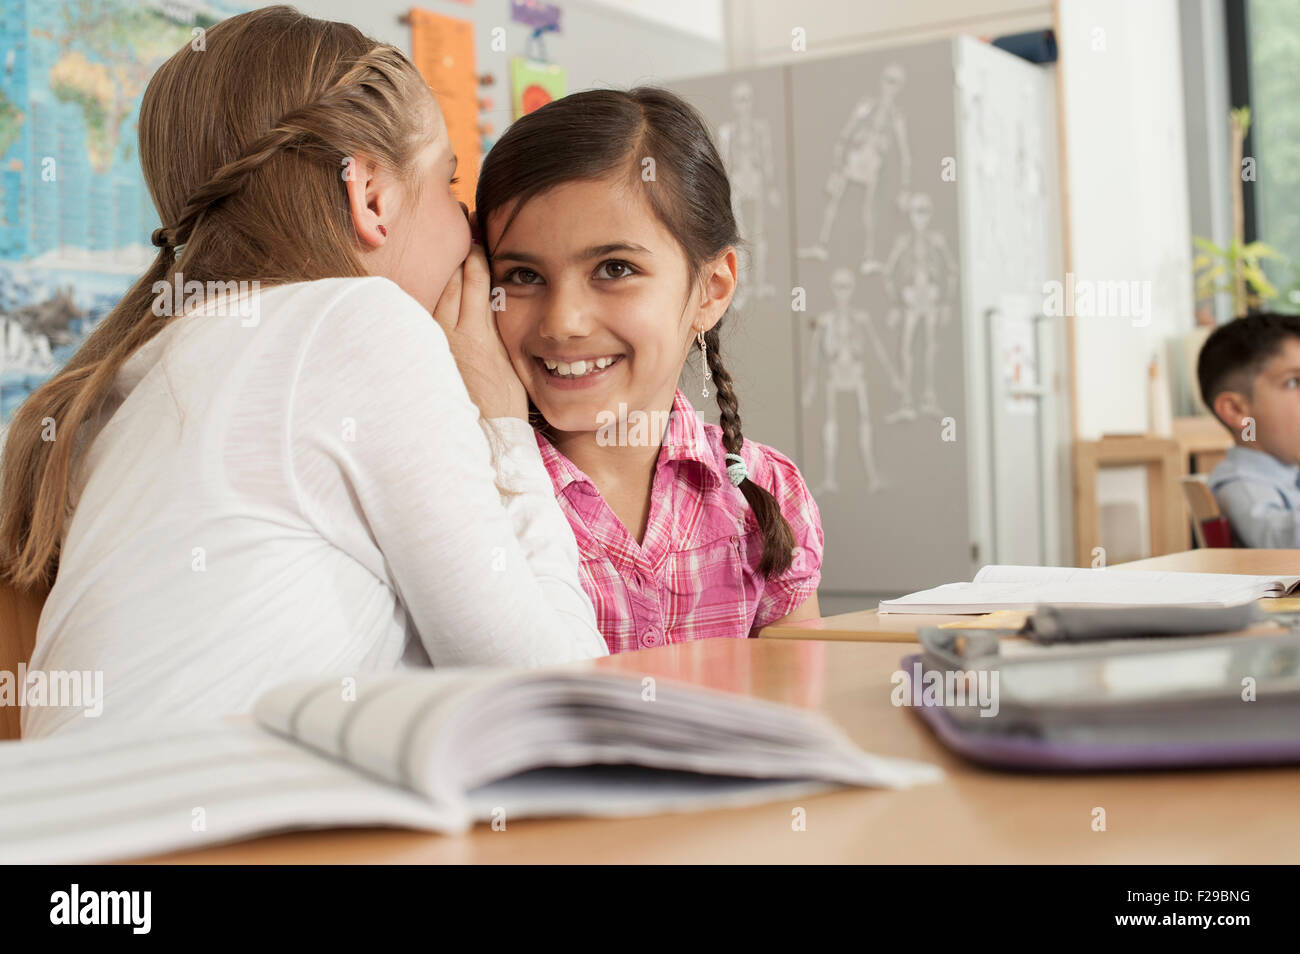 Schoolgirls whispering in class, Munich, Bavaria, Germany - Stock Image